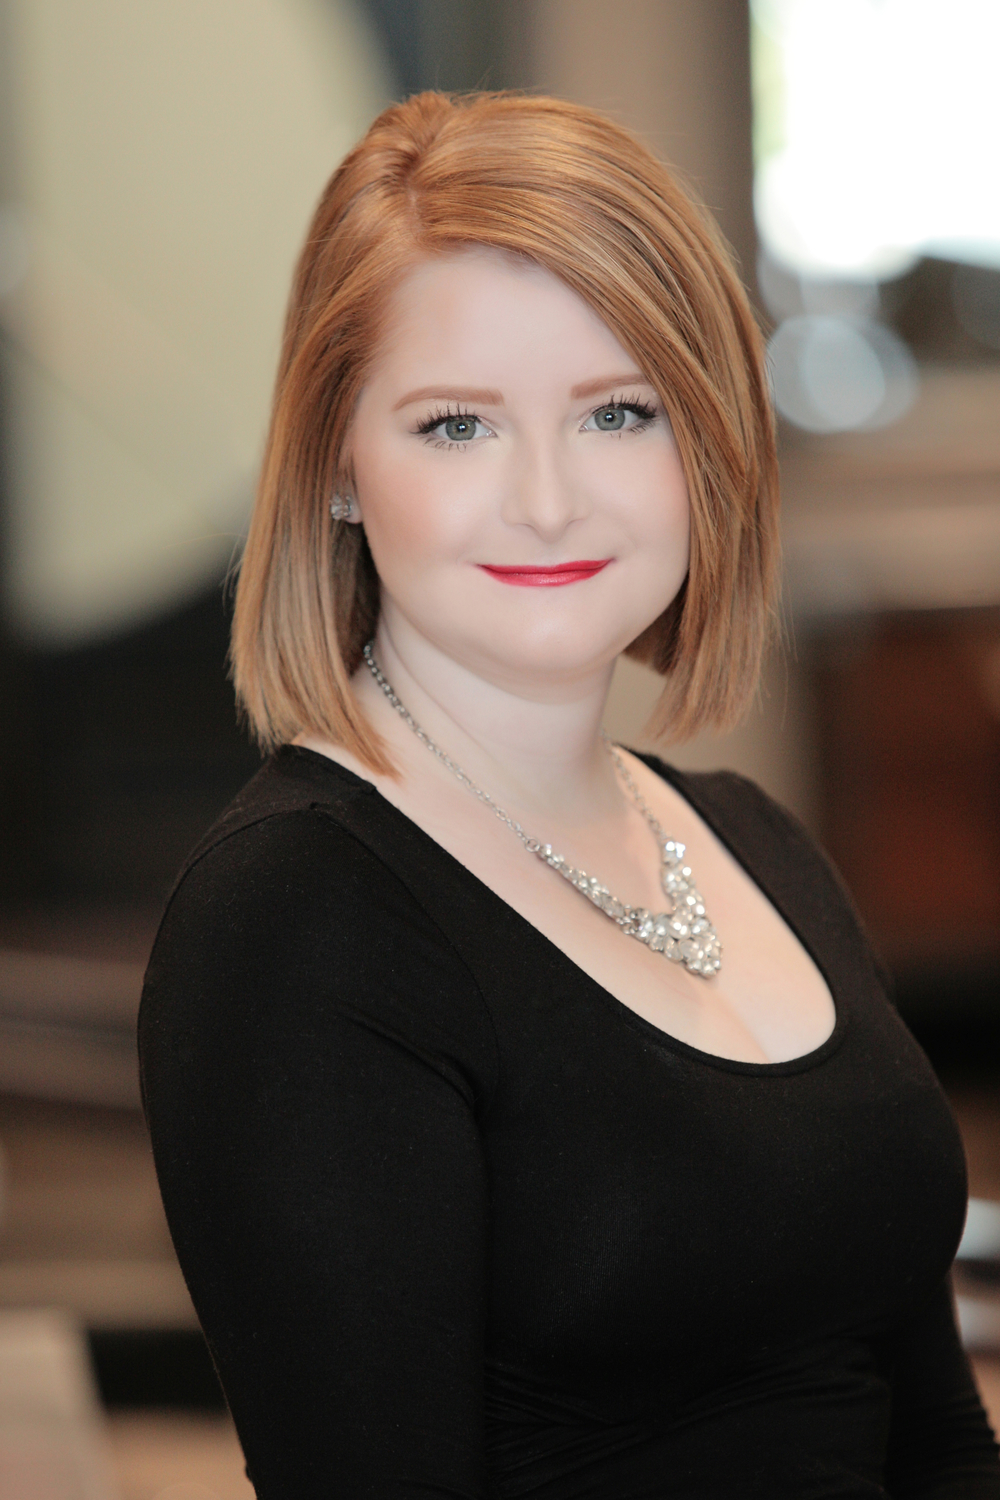 Ashley Donnelly Ashely specializes in great customer service and welcomes you with a smile when you walk through the door. From helping you choose the right products to scheduling your next appointment, she's happy to help in any way.